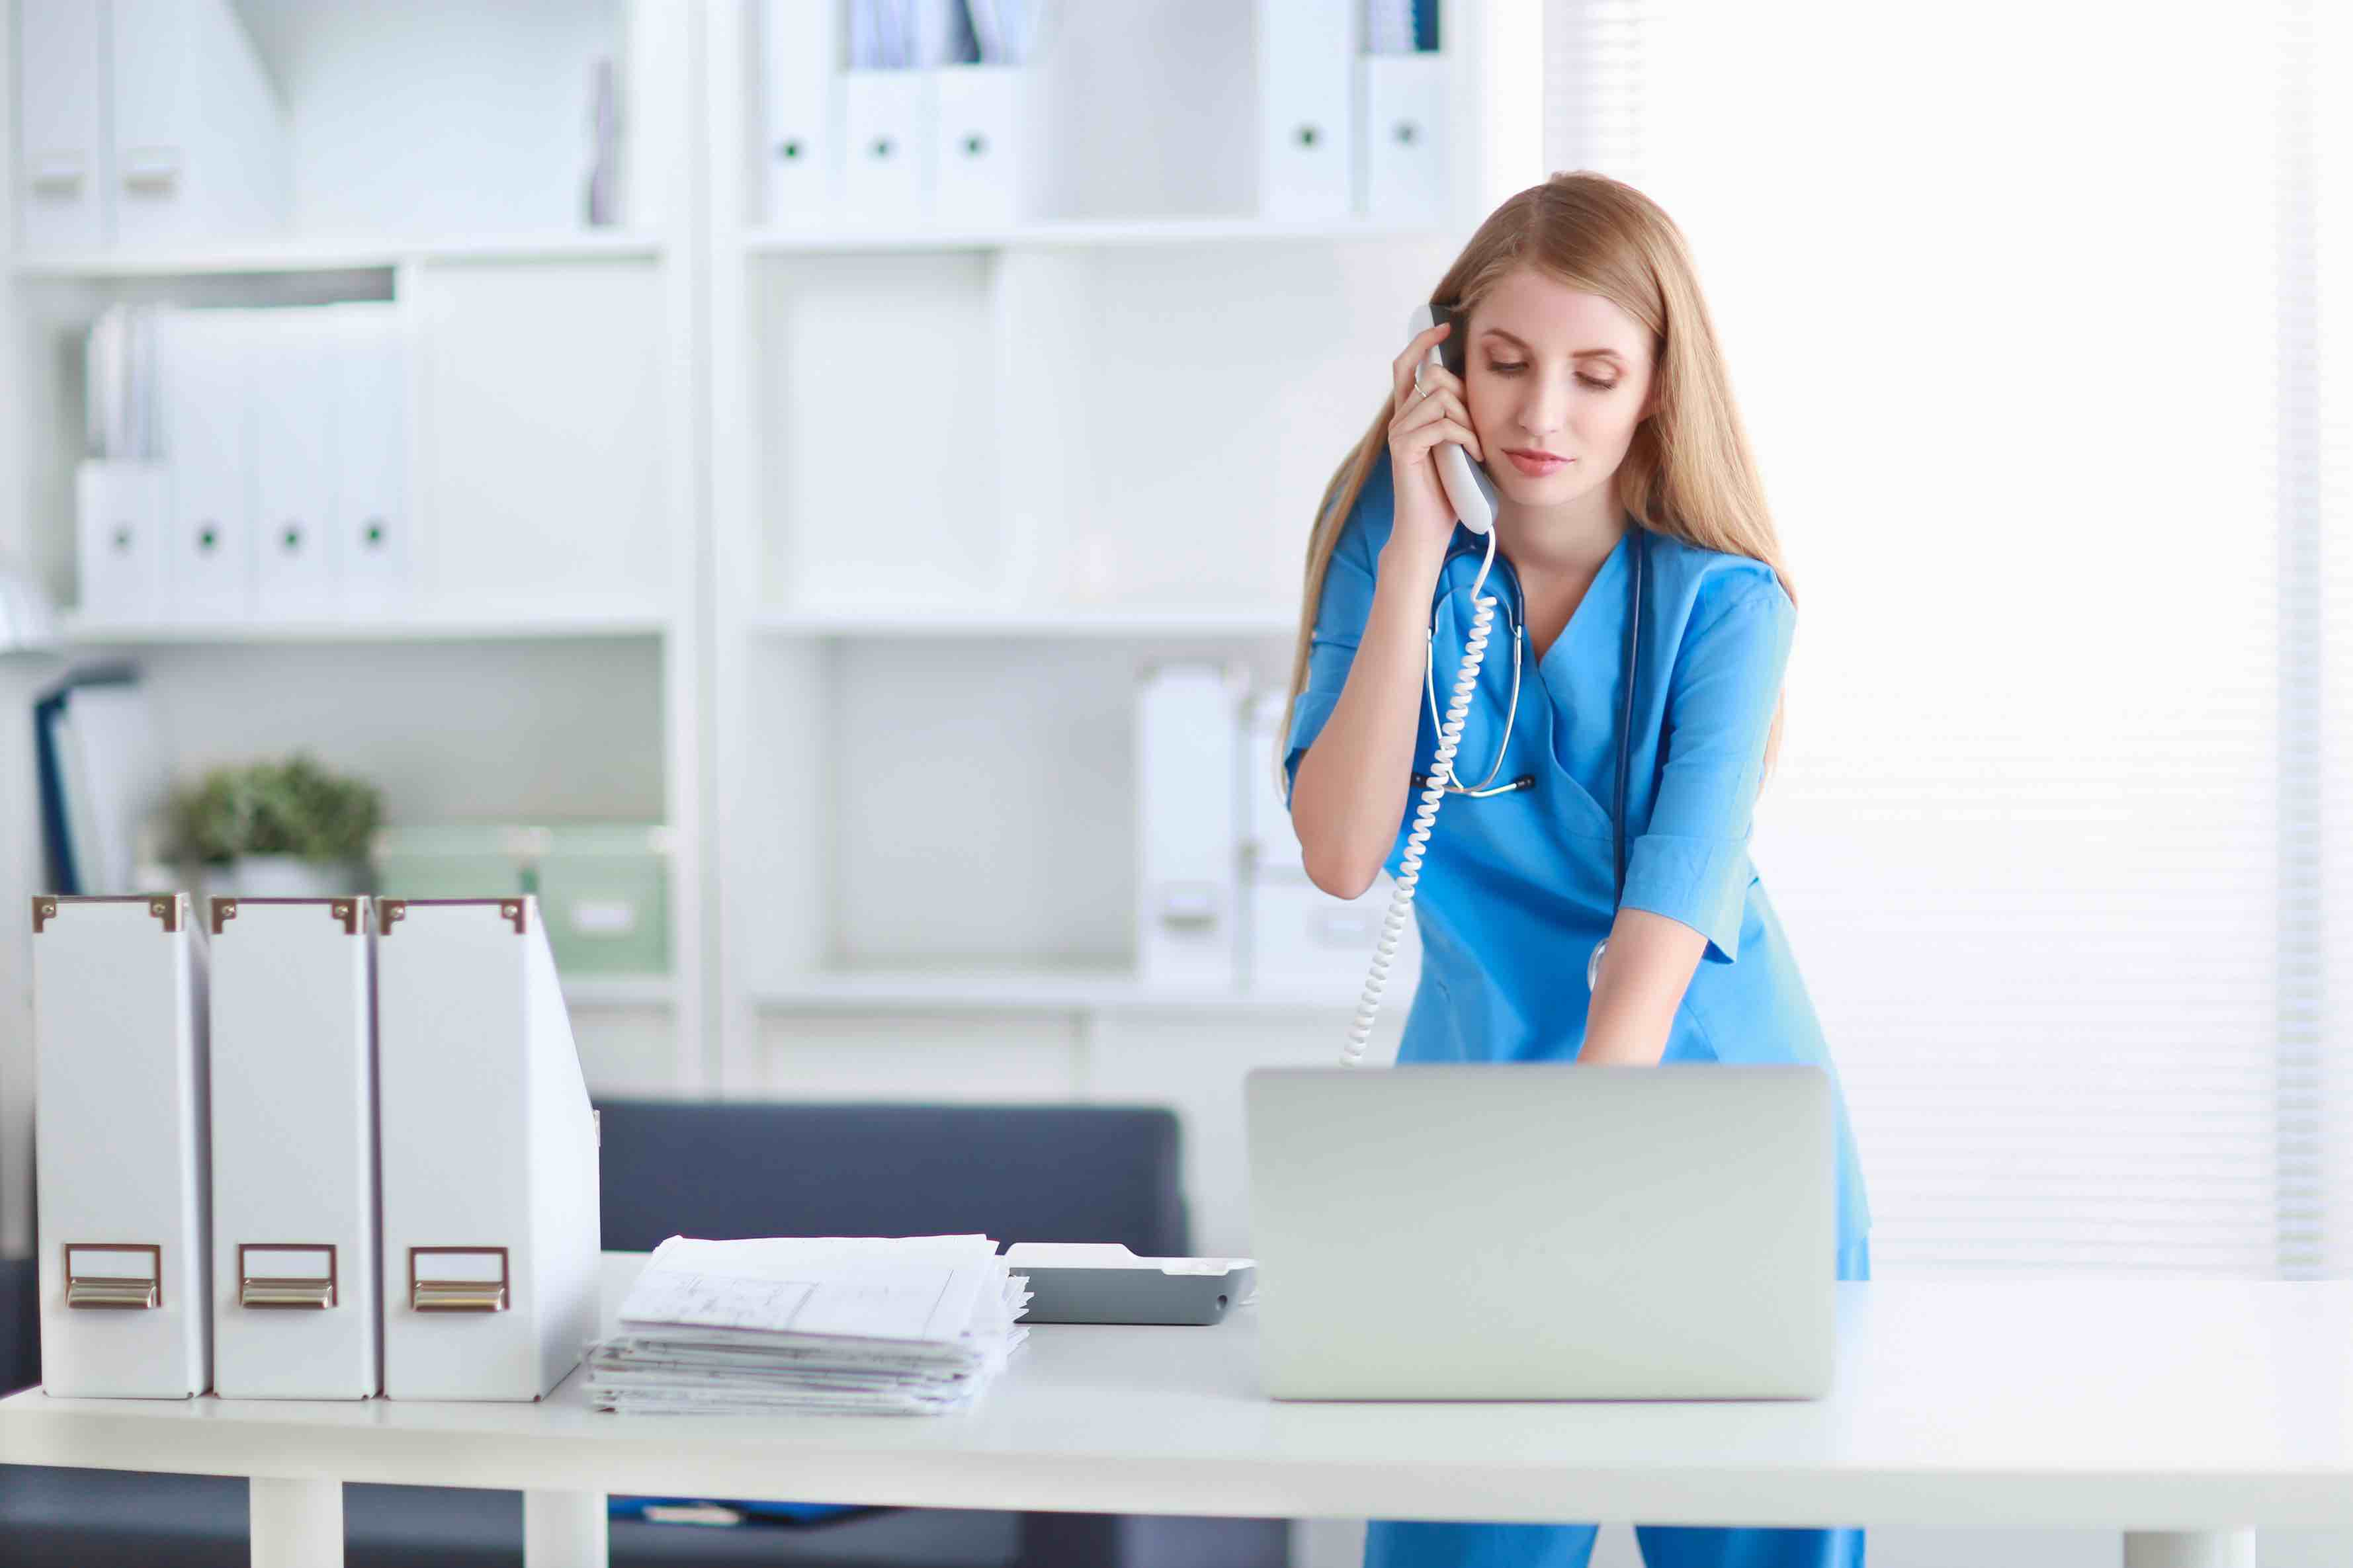 health care administration Specific roles the role of a health care administrator varies based on the specific role nursing home administrators are responsible for the overall management of nursing homes, which includes managing staff, finances, building maintenance and patient care.